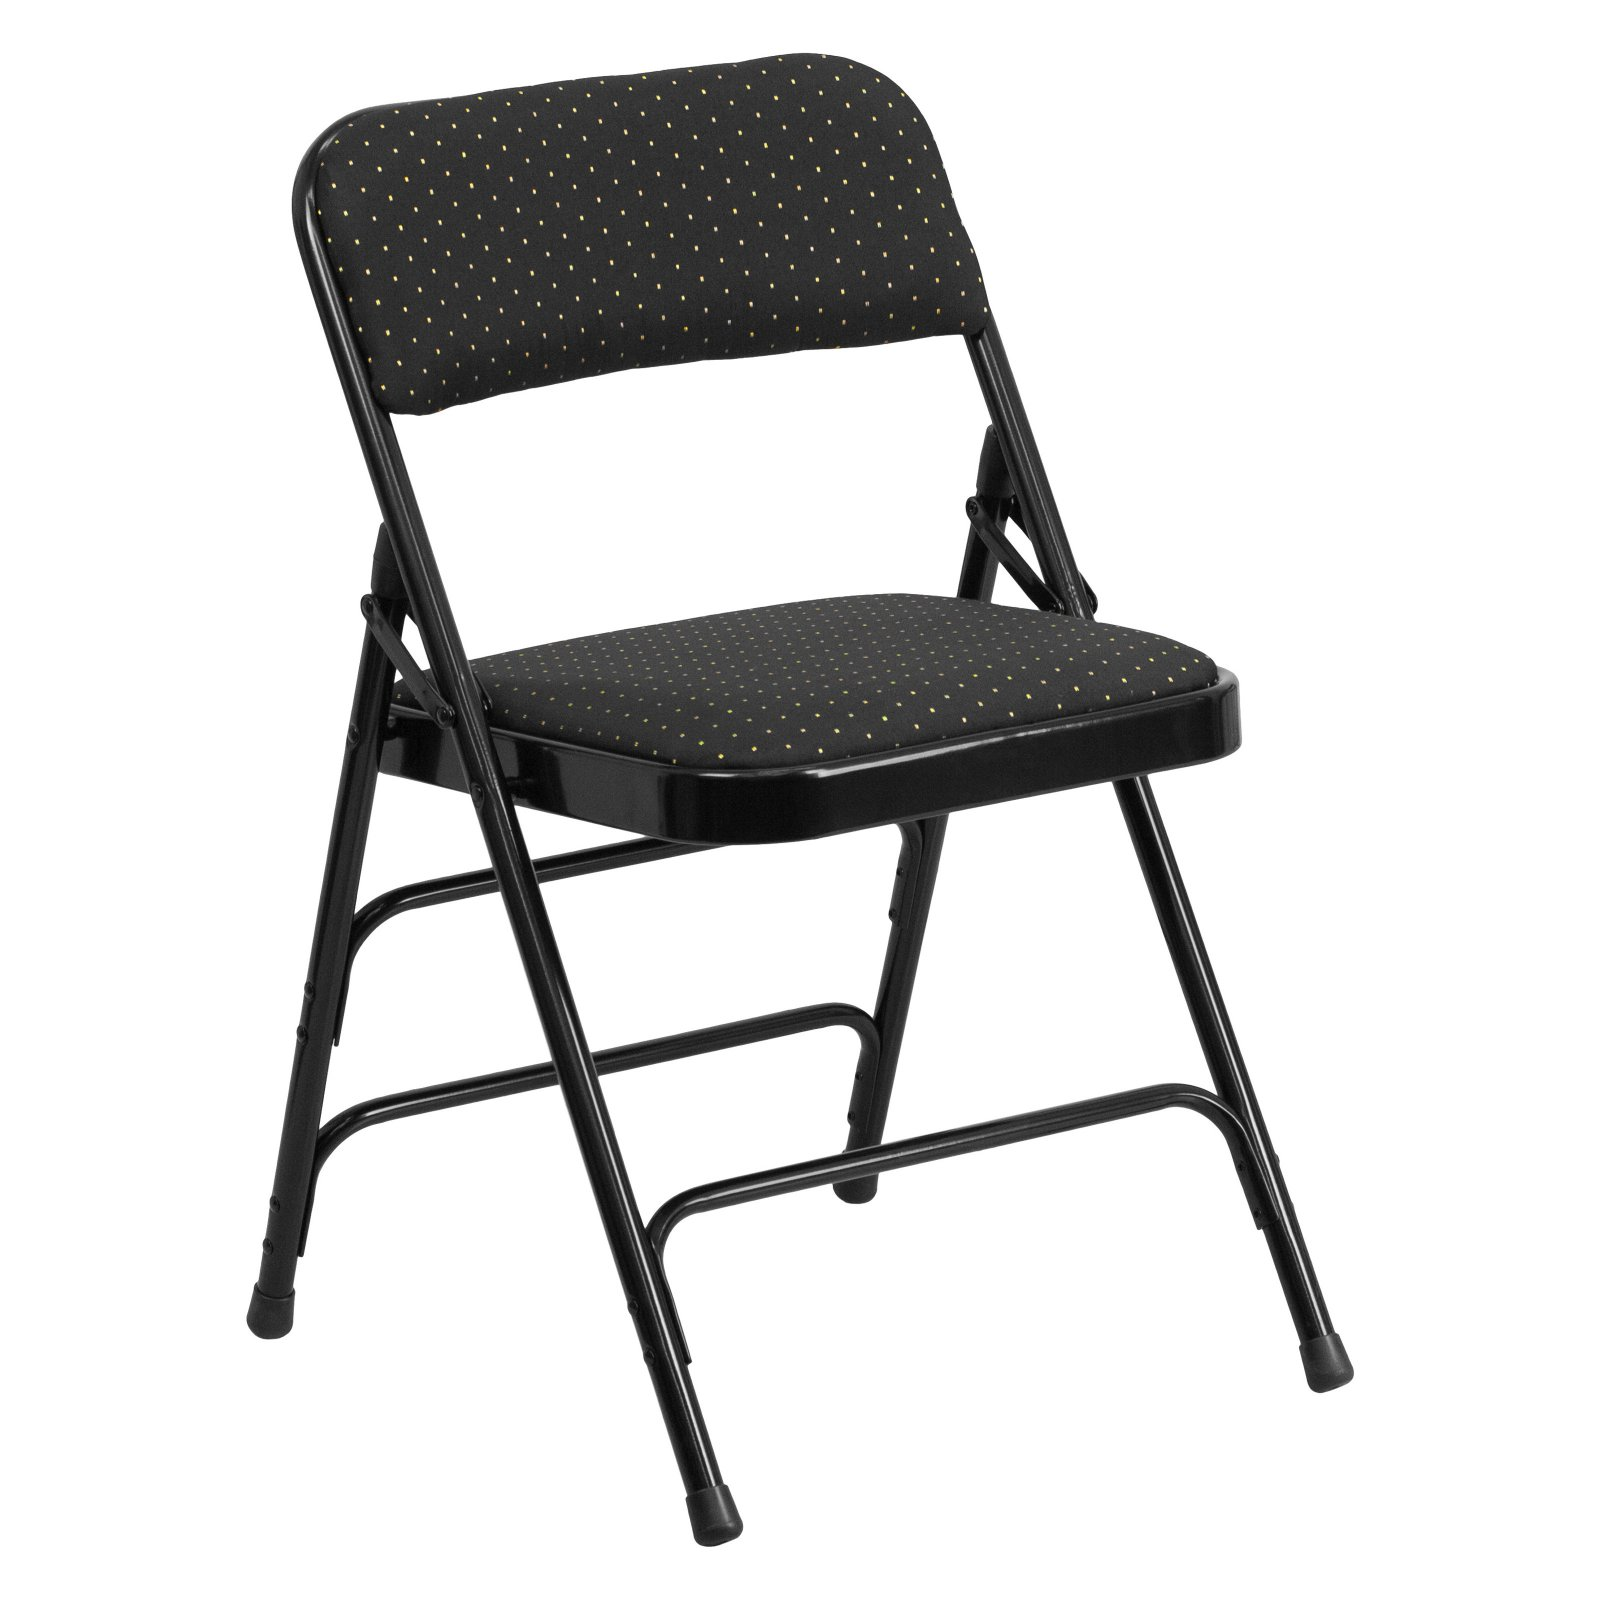 Flash Furniture HERCULES Series Curved Triple Braced and Double Hinged Patterned Fabric Upholstered Metal Folding Chair, Multiple Colors